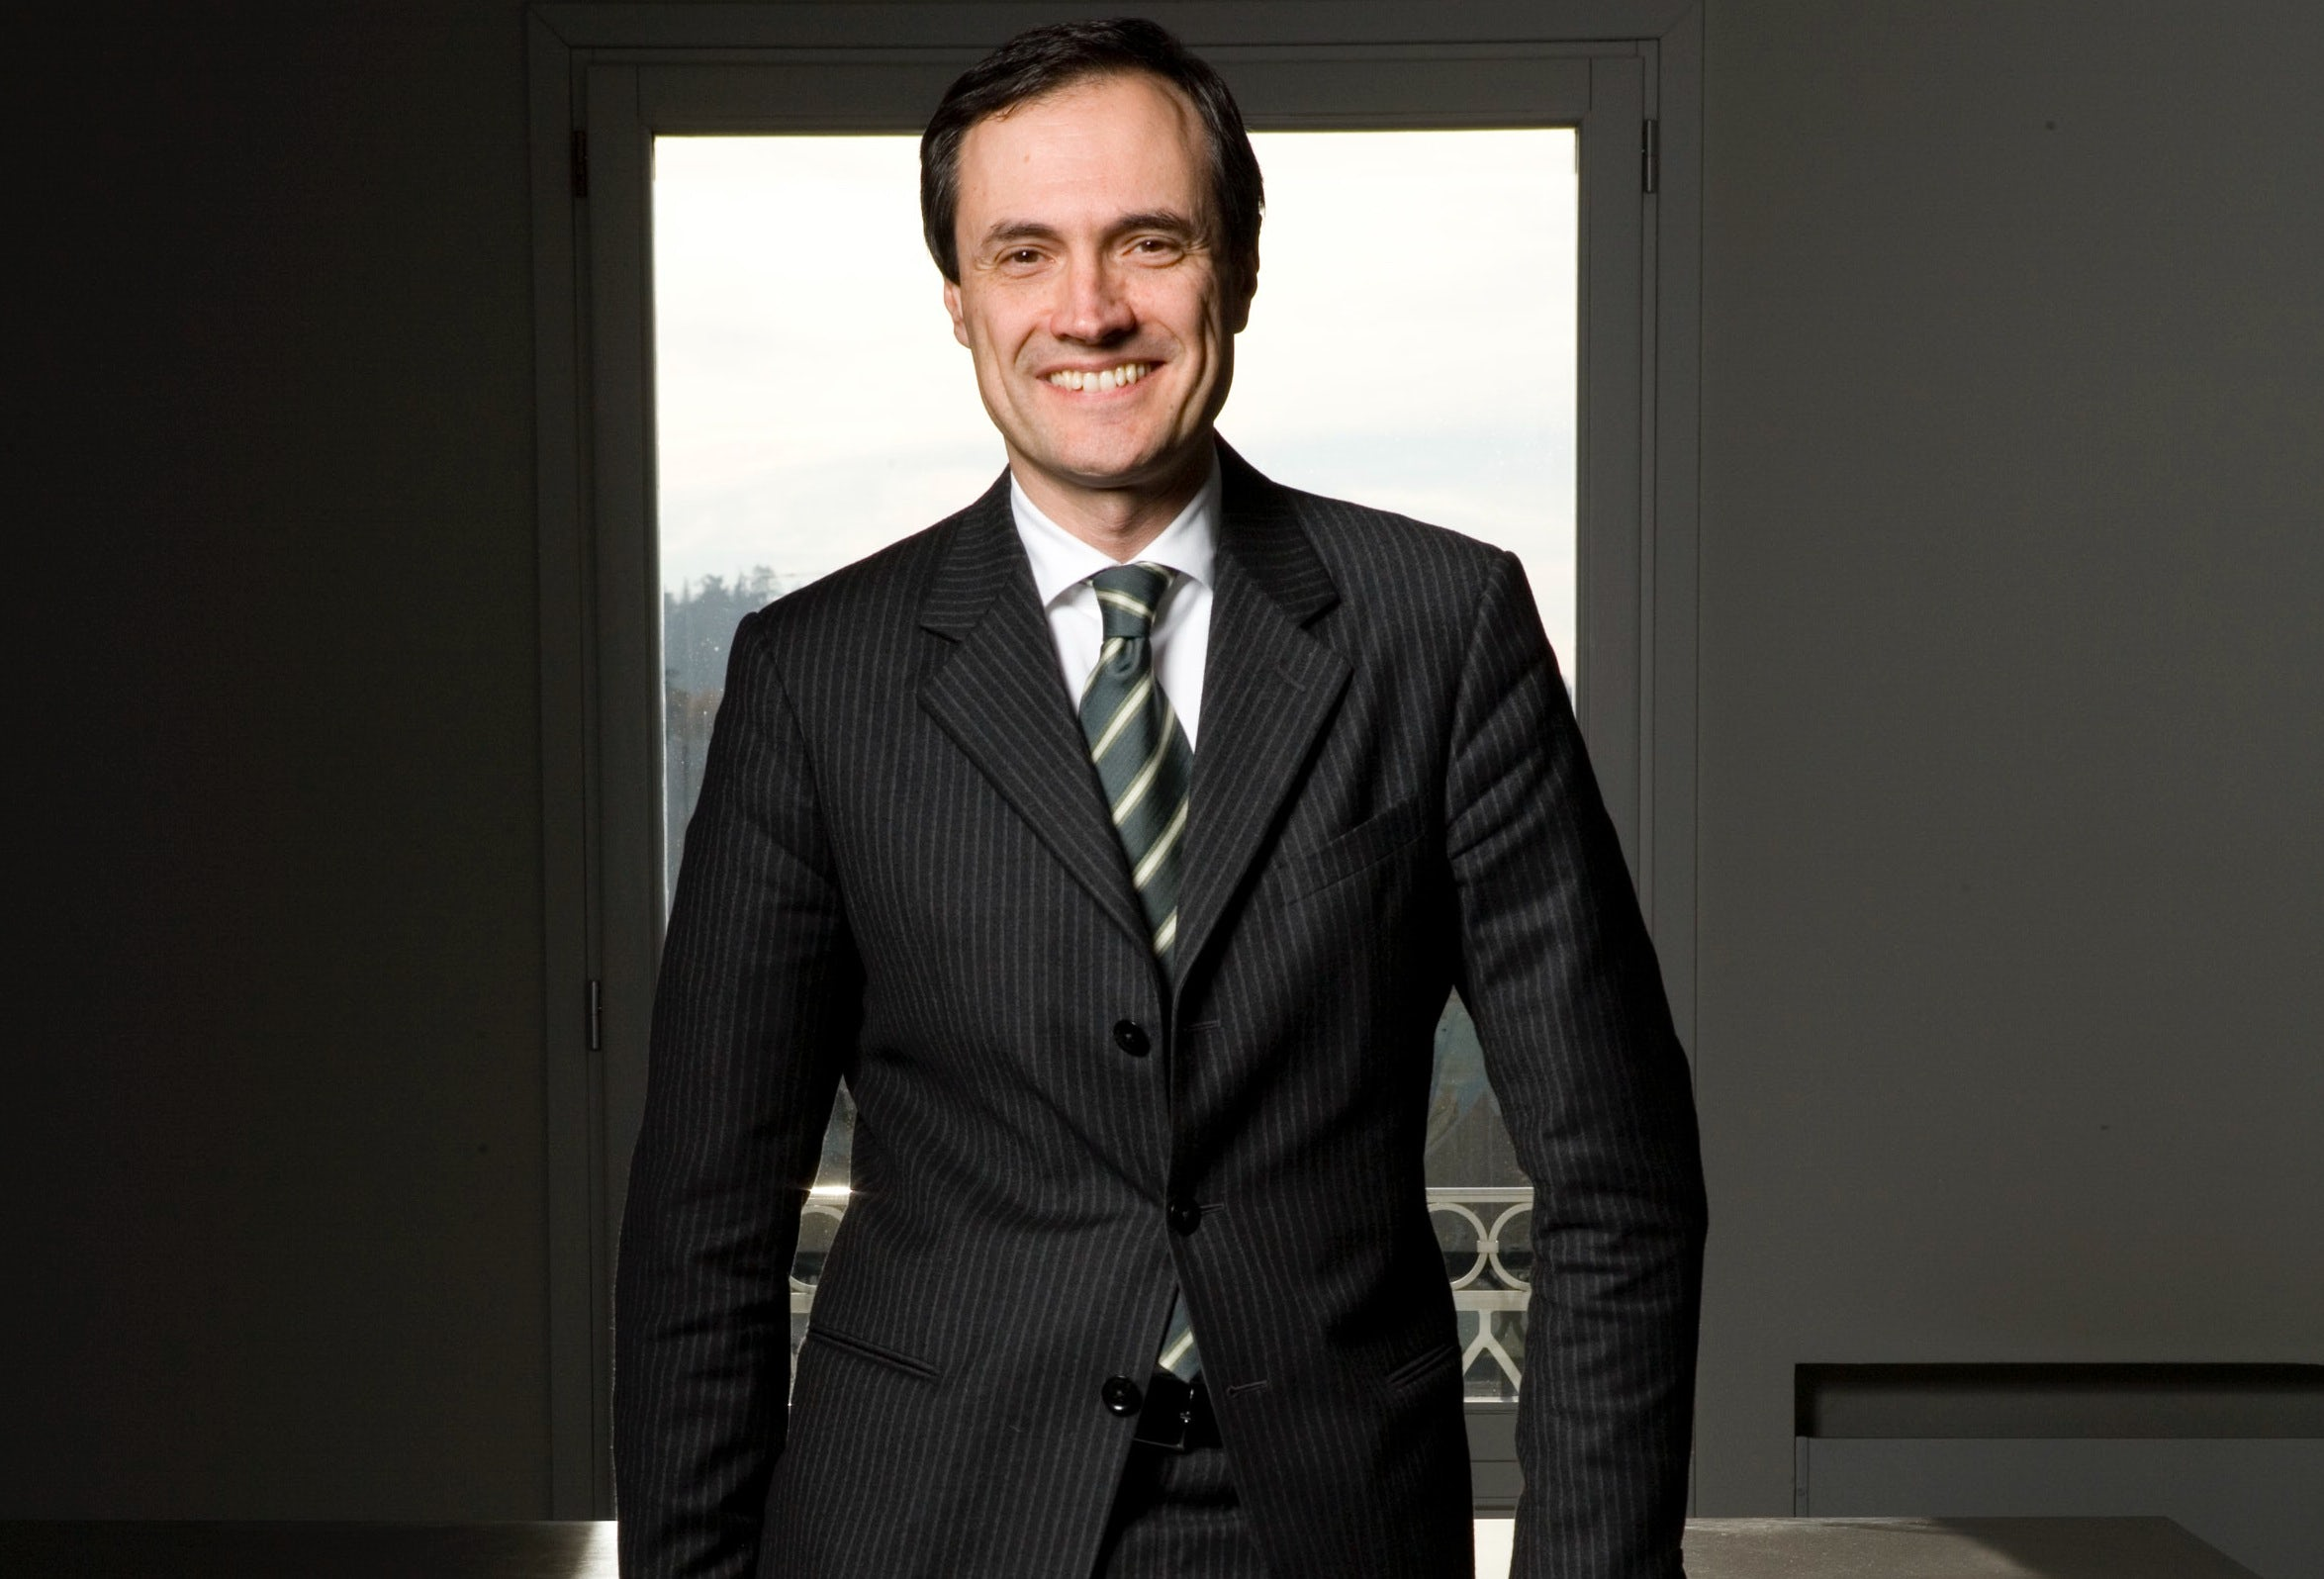 Paolo Fontanelli, CEO of Furla